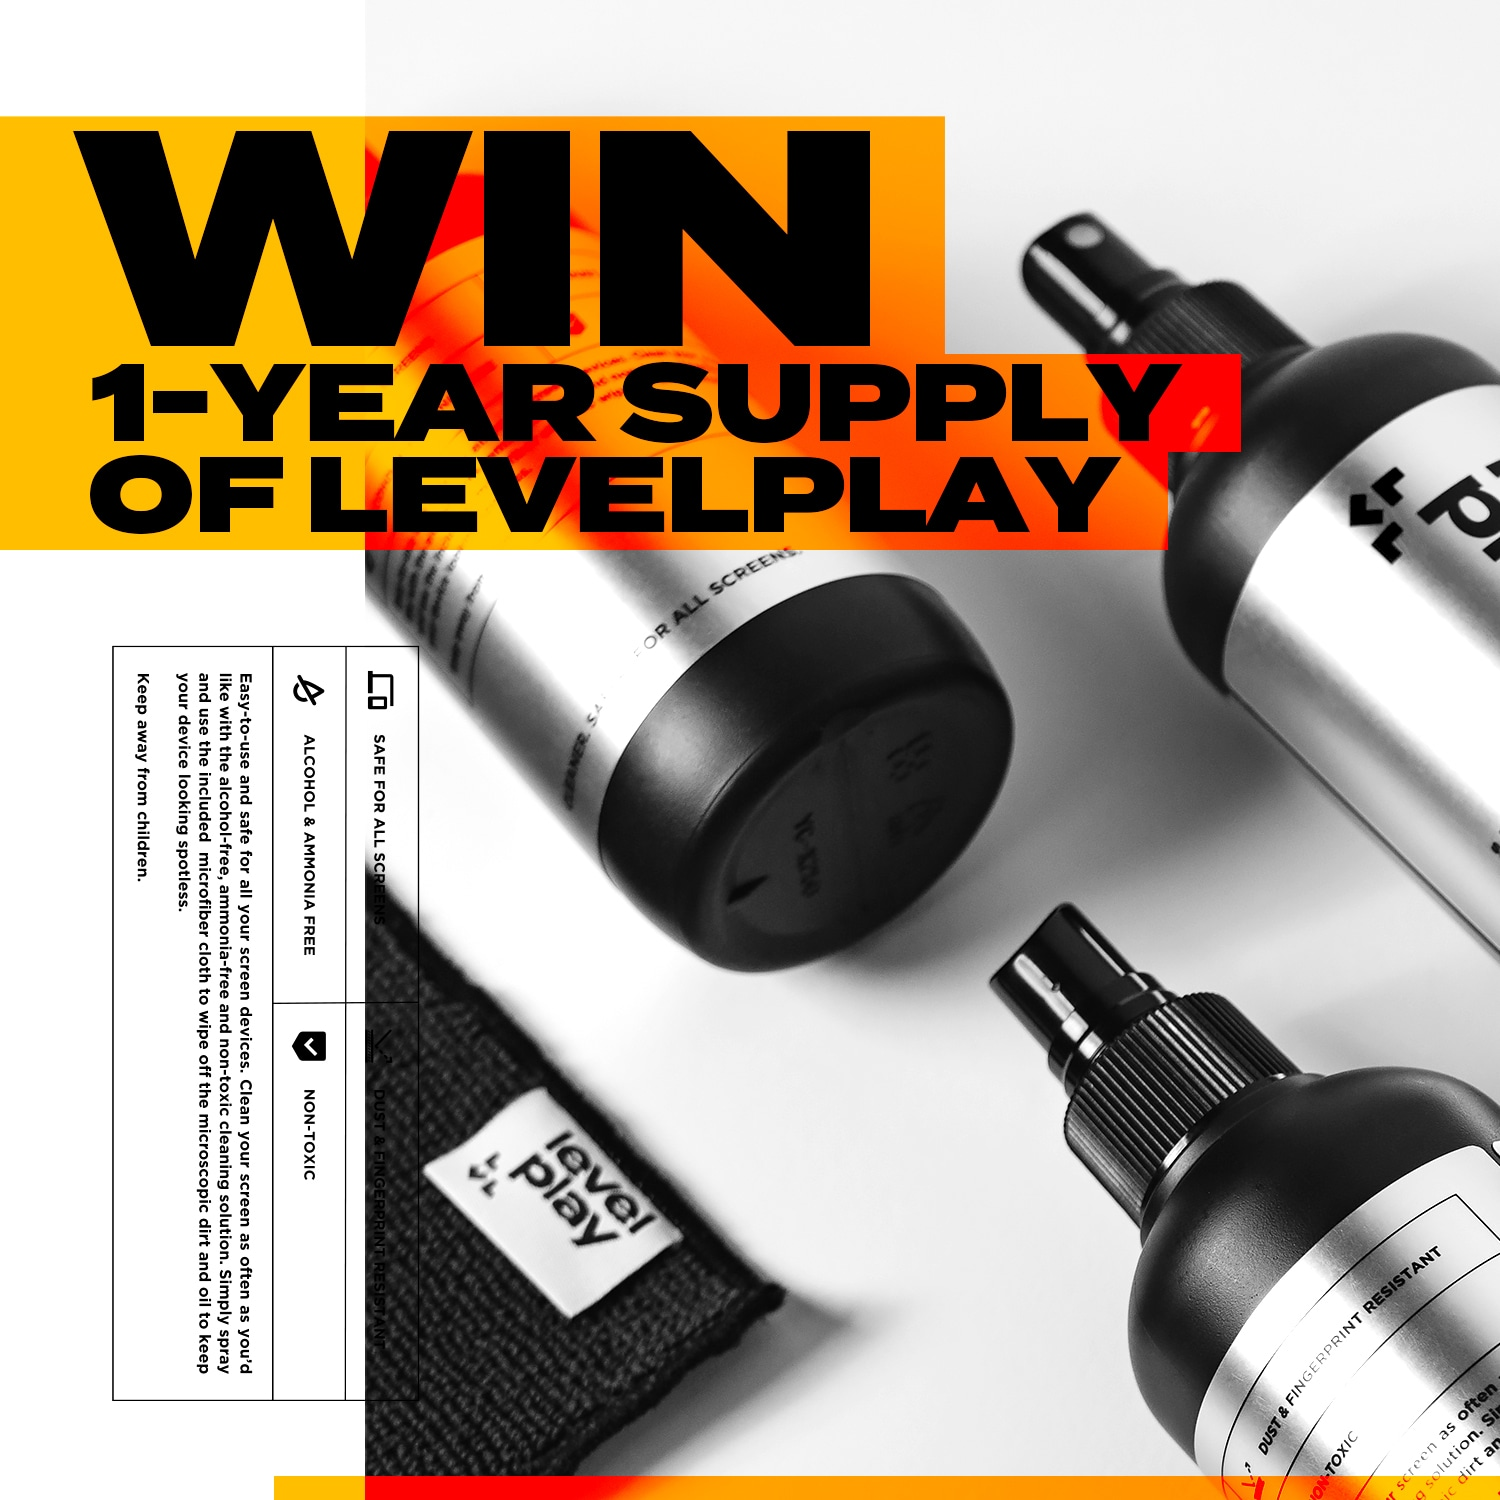 Win a 1-year supply of screen cleaner Giveaway Image